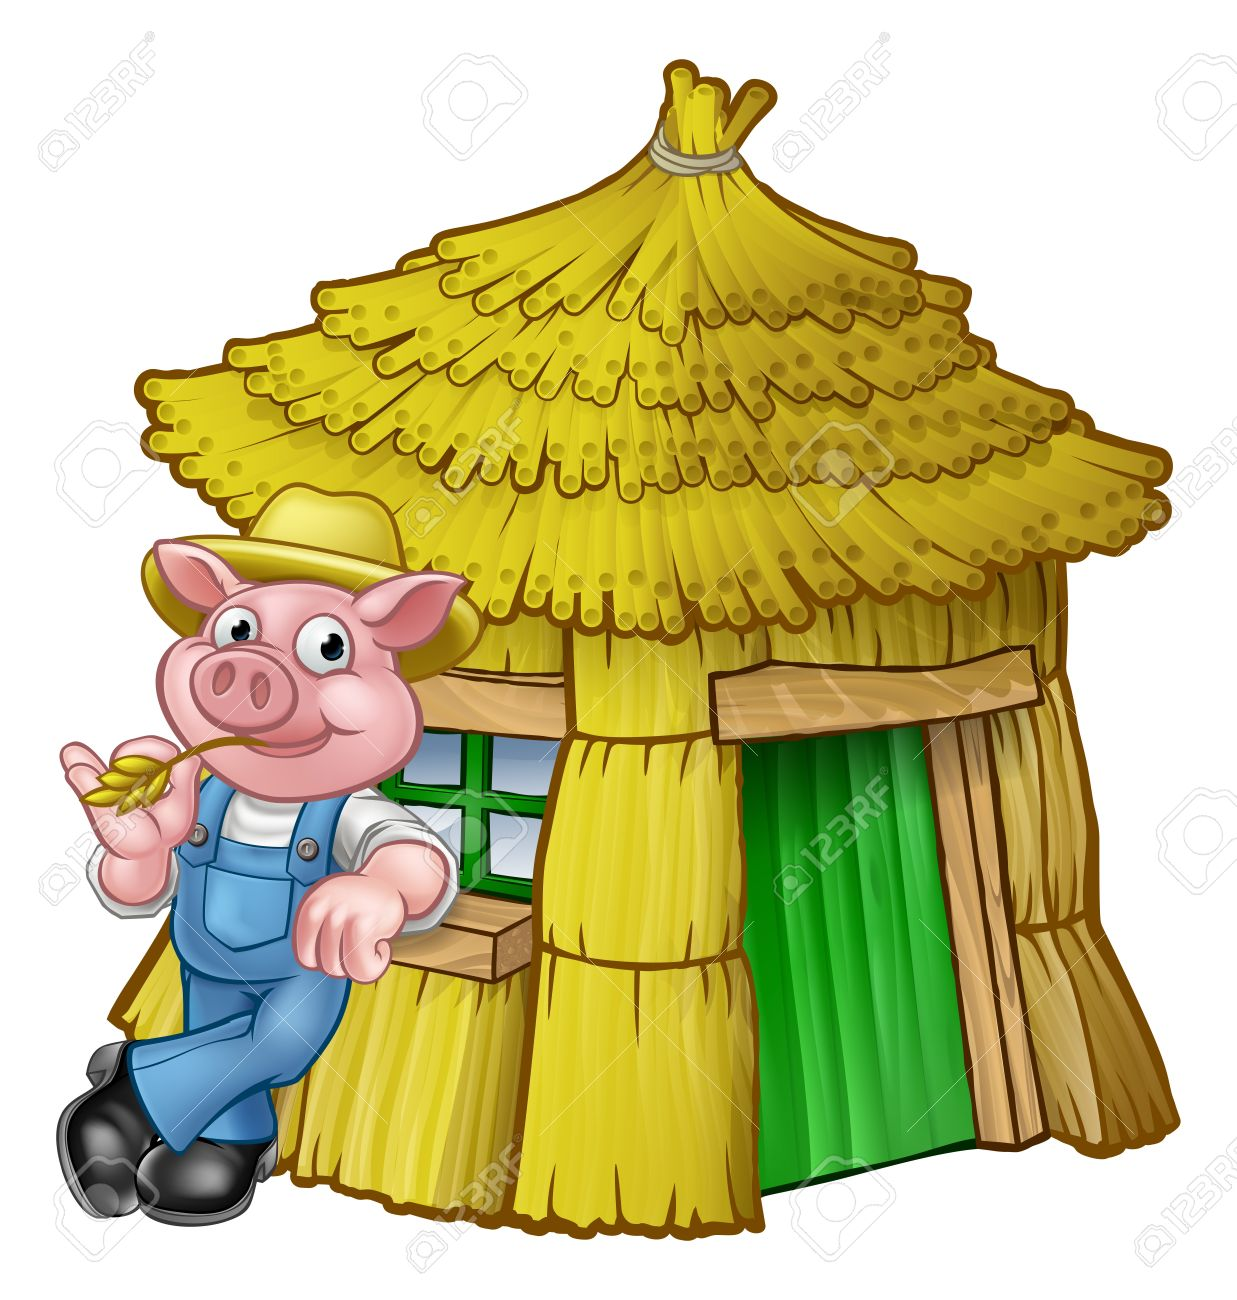 1237x1300 Straw House Clipart 85466224 Three Little Pigs Fairy Tale Straw